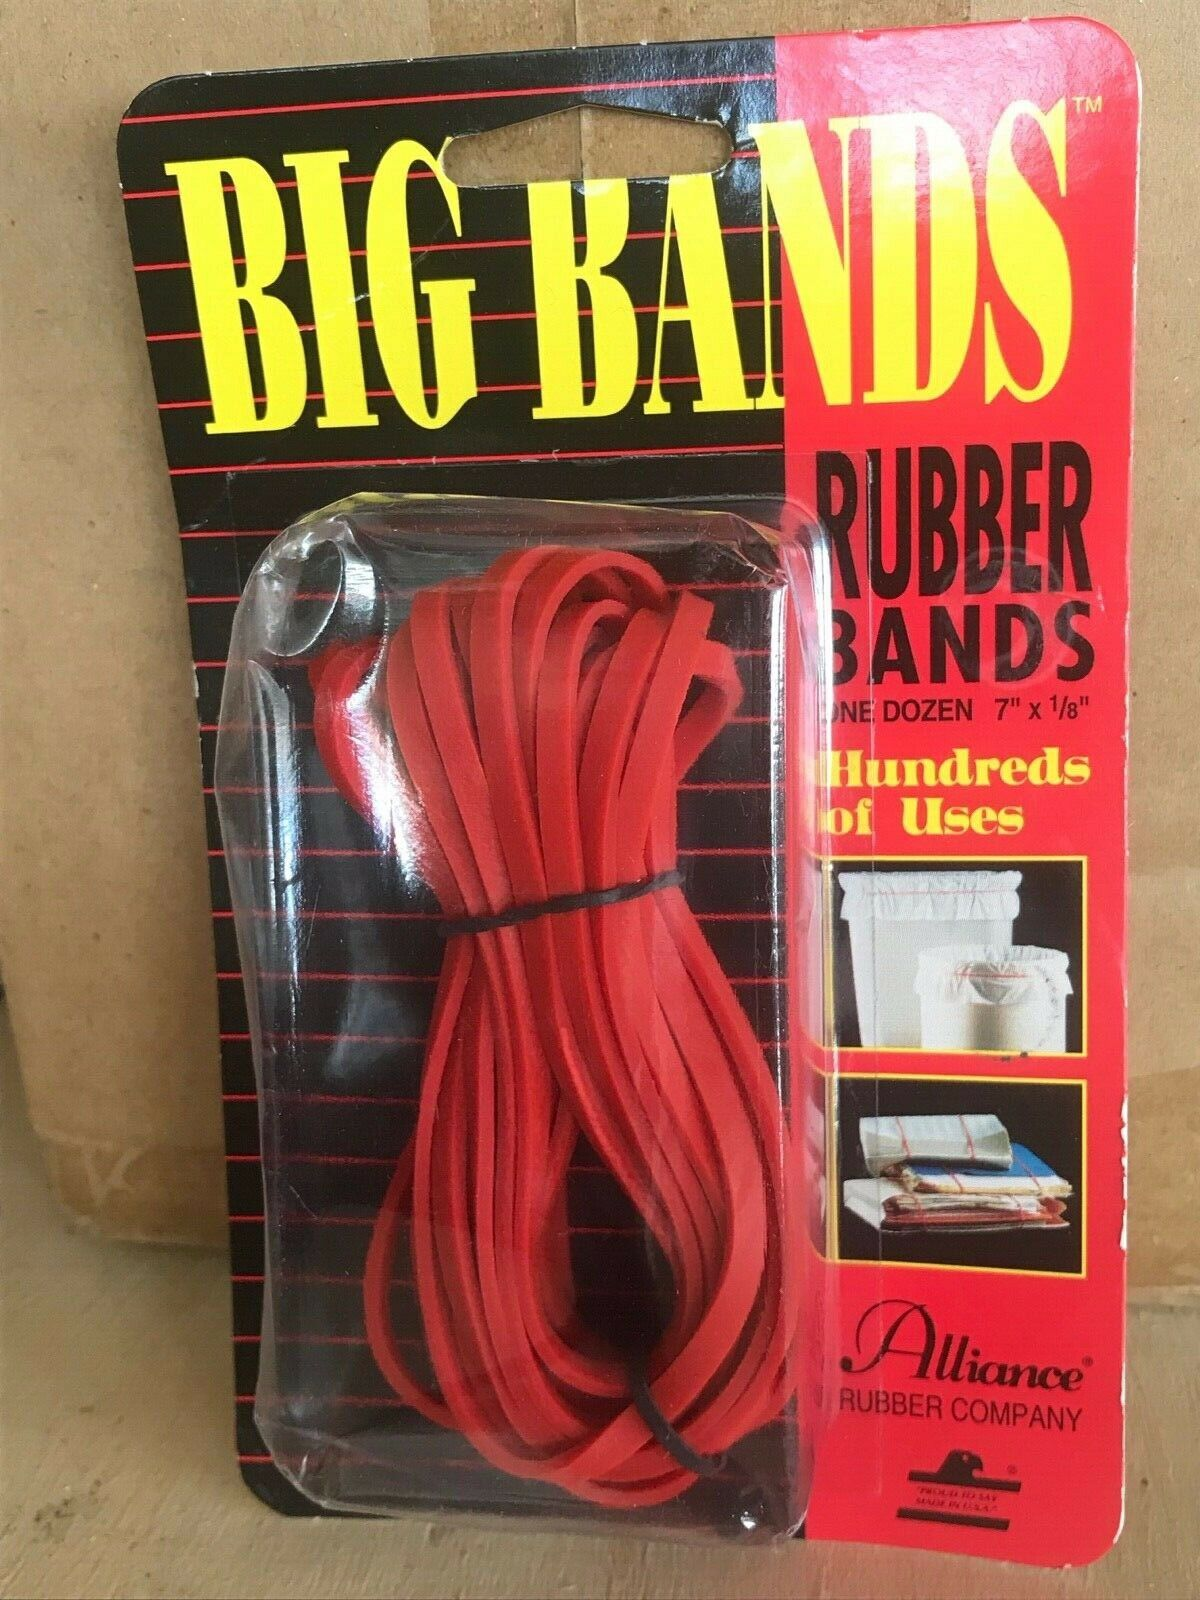 "Big Rubber Bands - 7"" Length X 1.8"" Width - 3pack of 12 = 36"